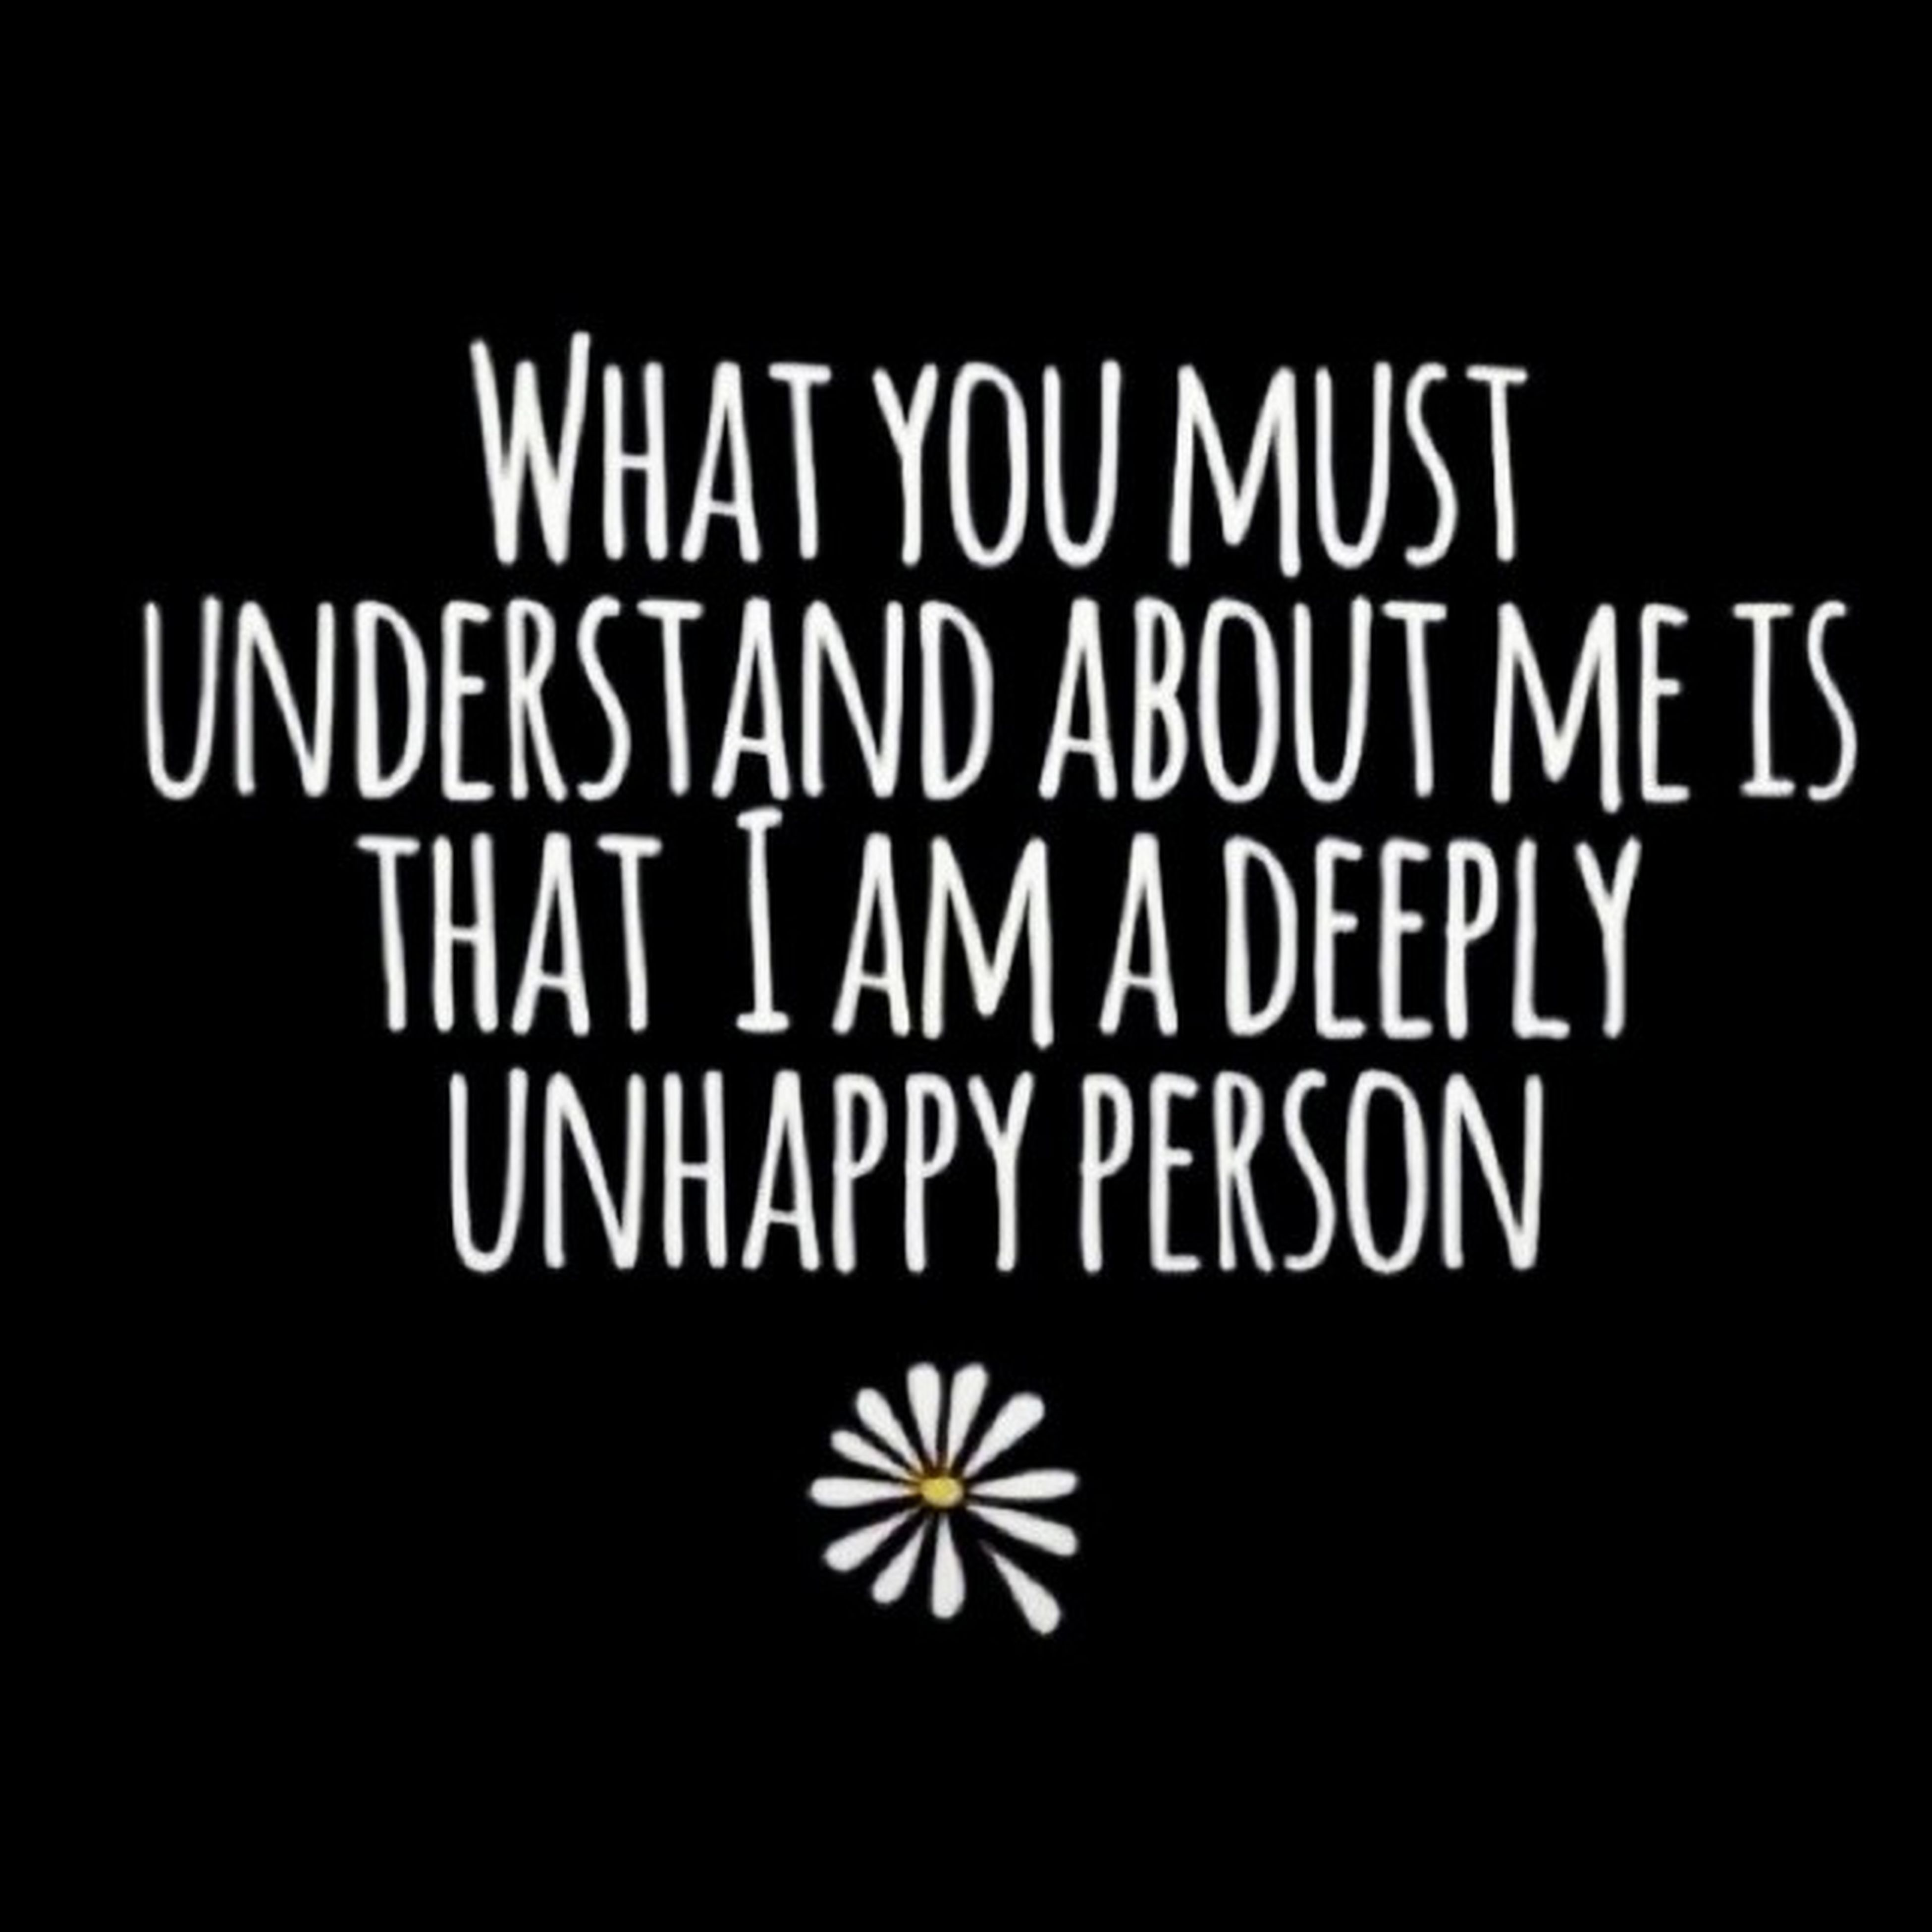 ..... I am a deeply unhappy person- Looking for Alaska Johngreen MyFavoriteWriter IWantThisBook Book Reader LookingForAlaska <3 @johngreenwritesbooks TheBest Good Love MyBooks MyProblem ;) Read Follow4Follow FollowforFollow SpamForSpam Spam4Spam LikeforLike Like4Like